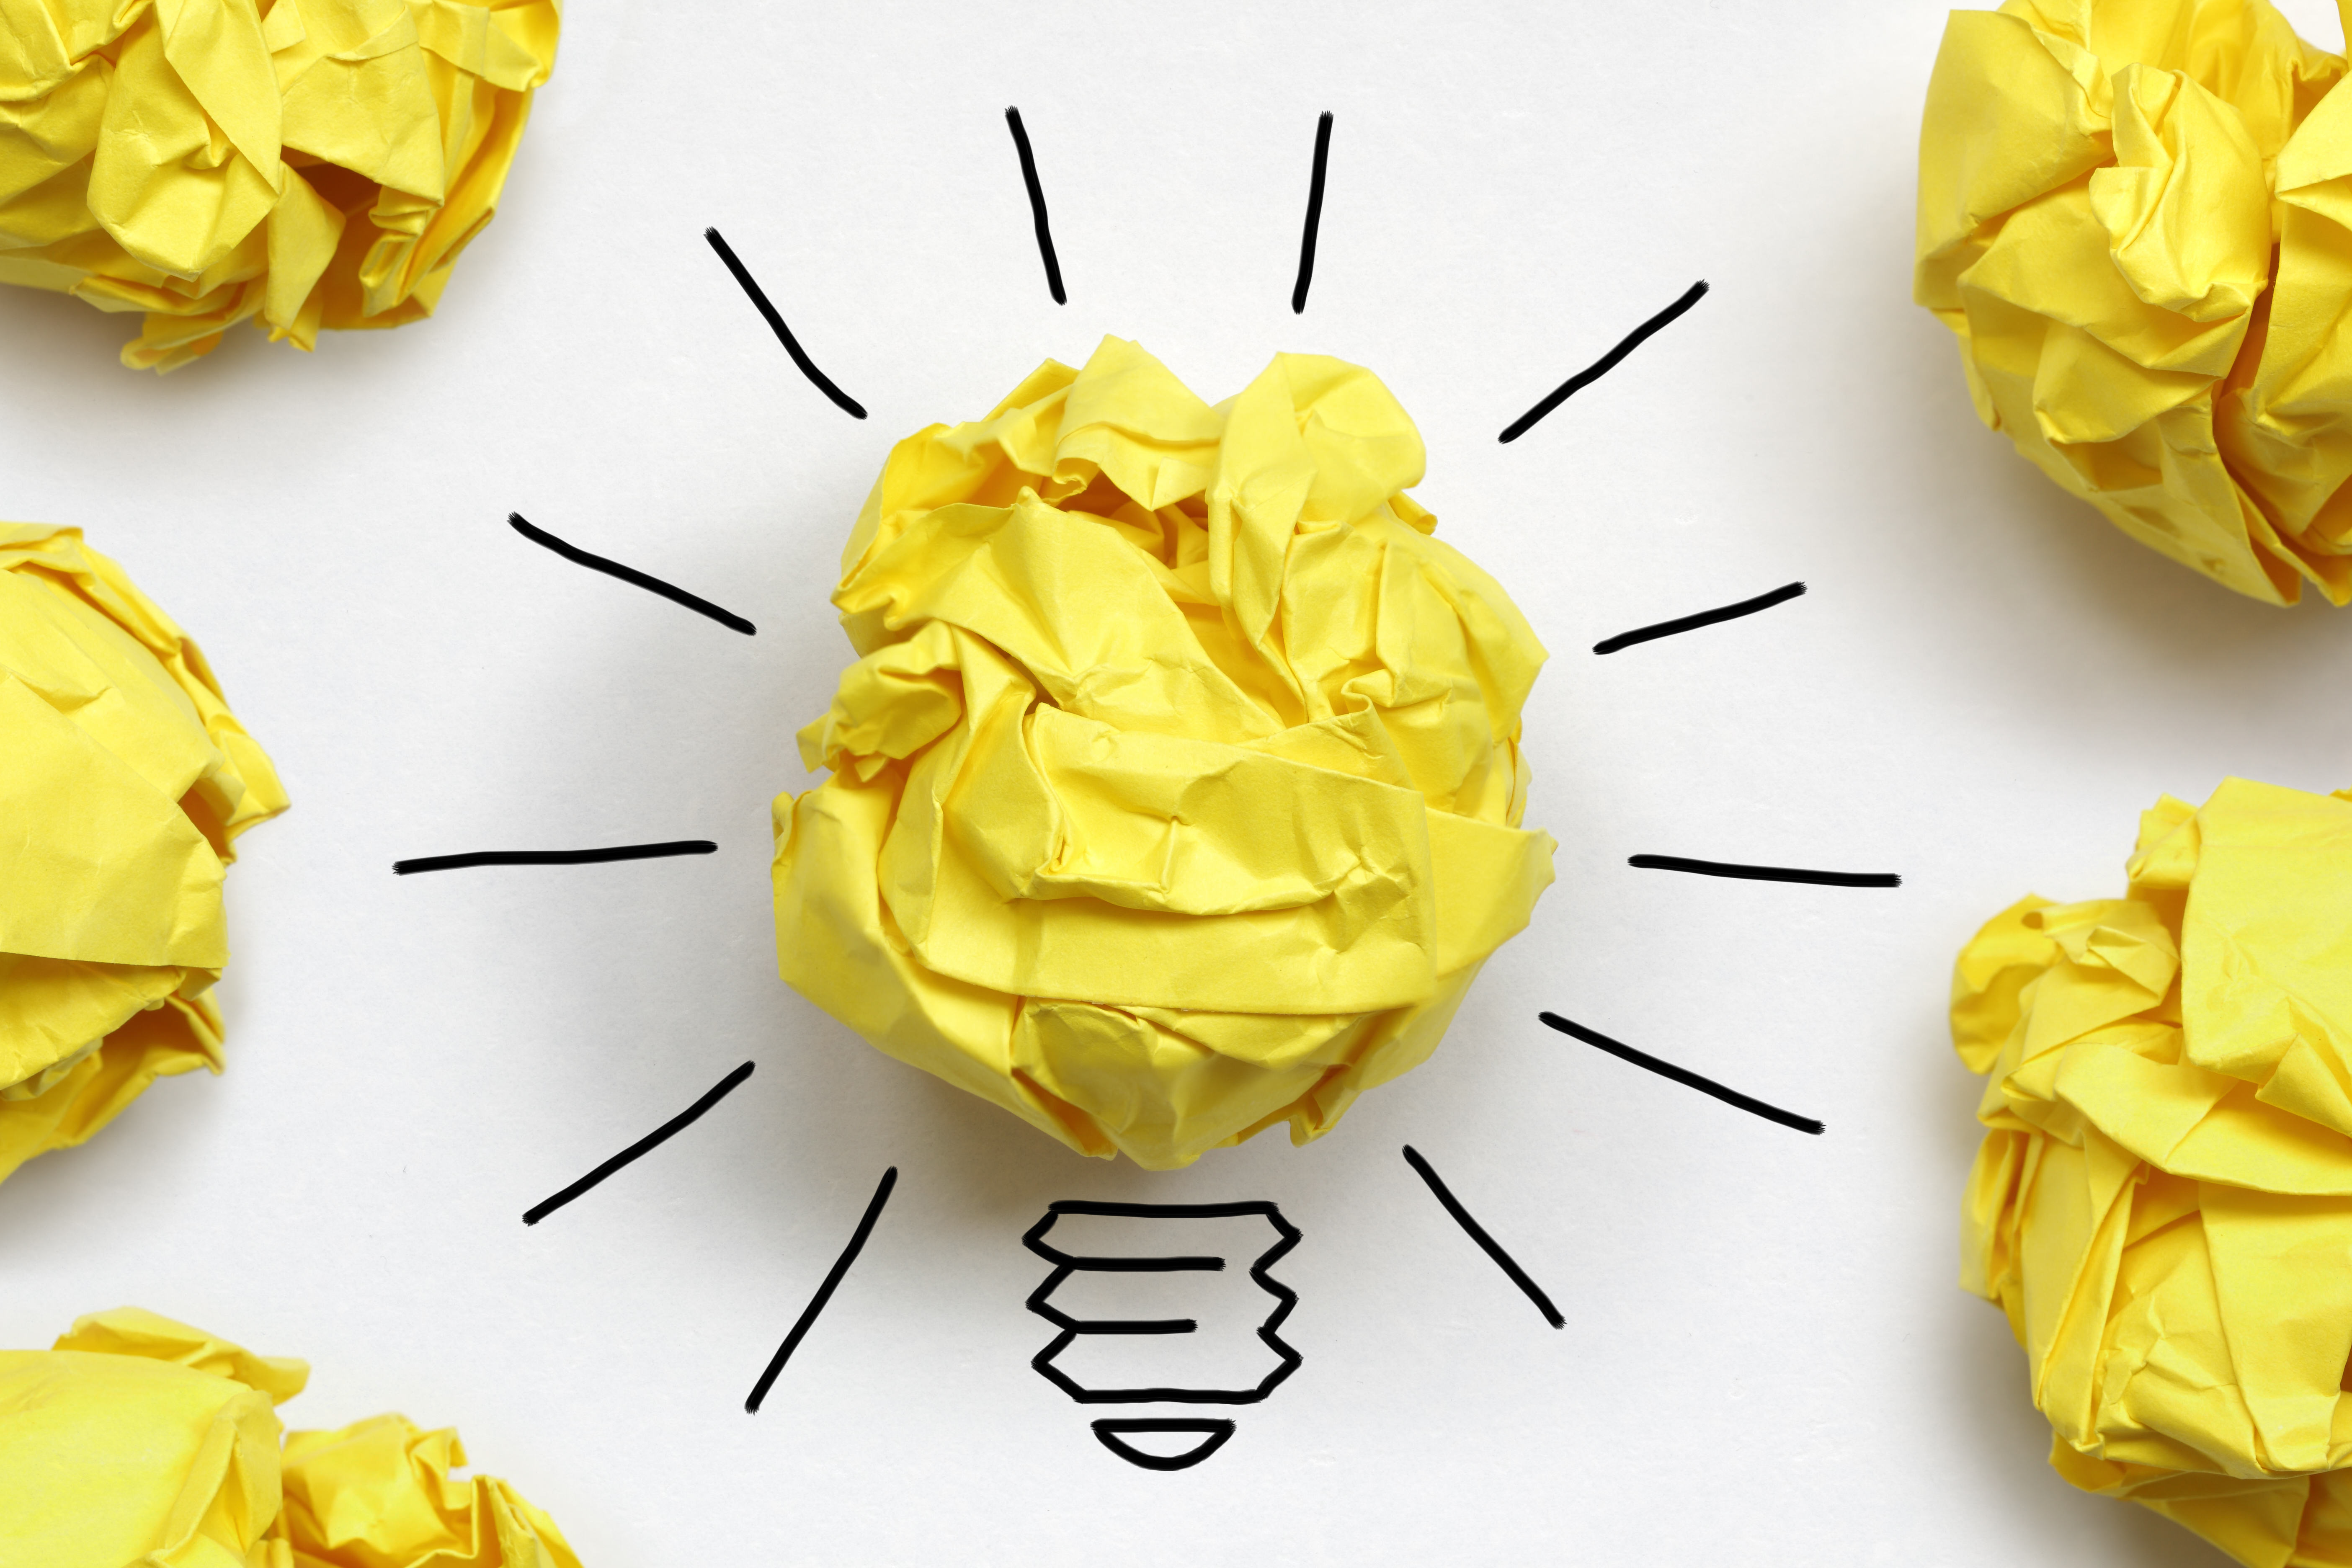 5 Ideas on How to Never Run Out of Fresh Ideas